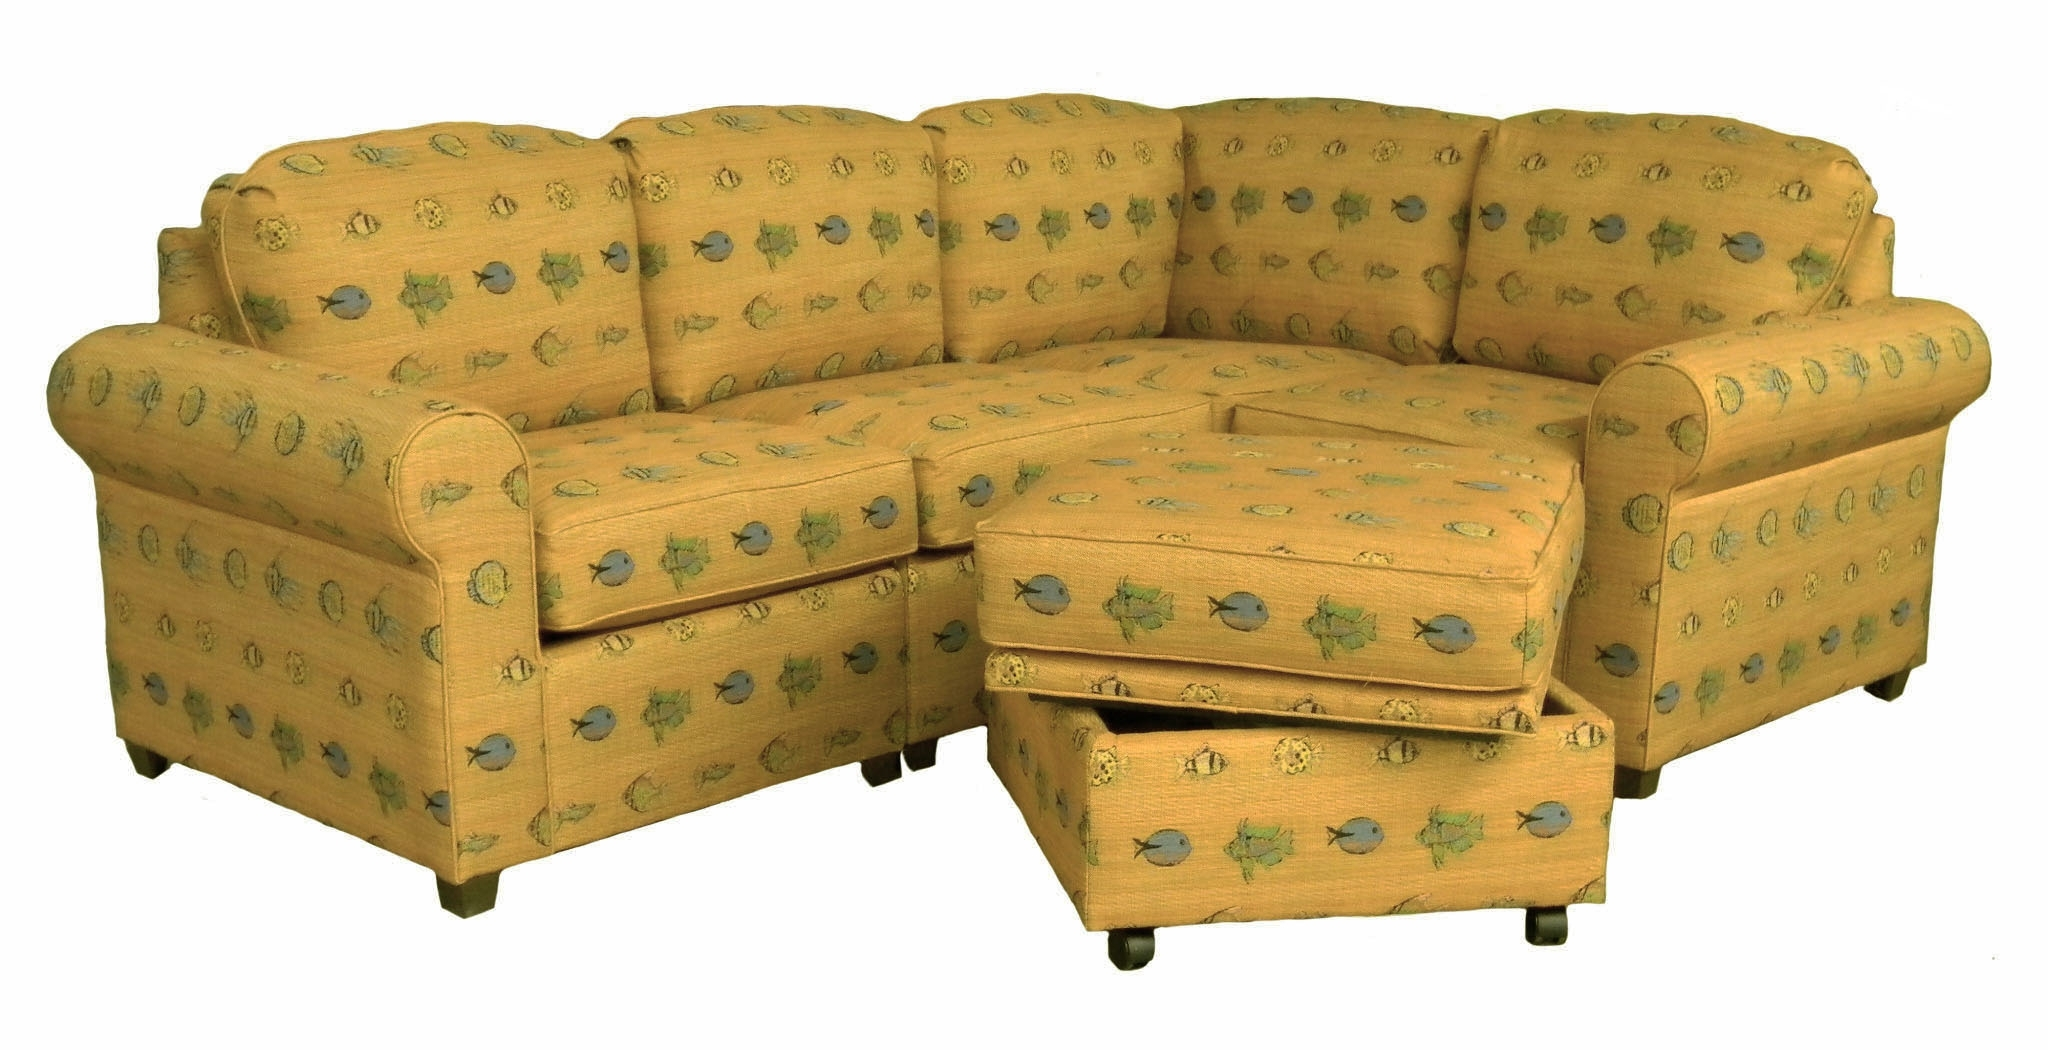 Furniture: Fabric Upholstery For Sectional Couches With Ottoman inside Sectional Sleeper Sofas With Ottoman (Image 6 of 15)